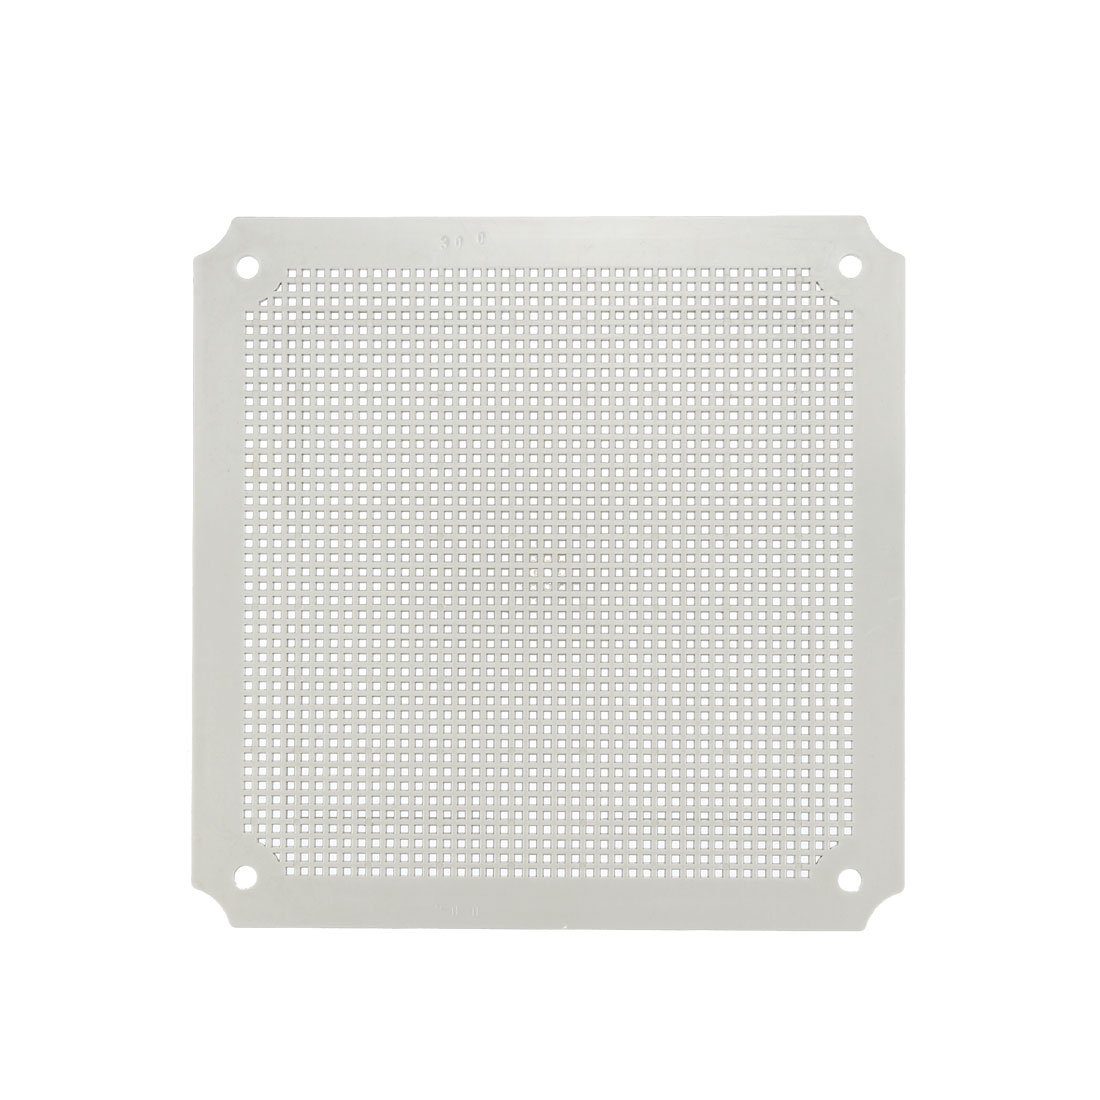 ABS Plastic Internal Panel Suitable for 300mm x 300mm Electrical Junction Box